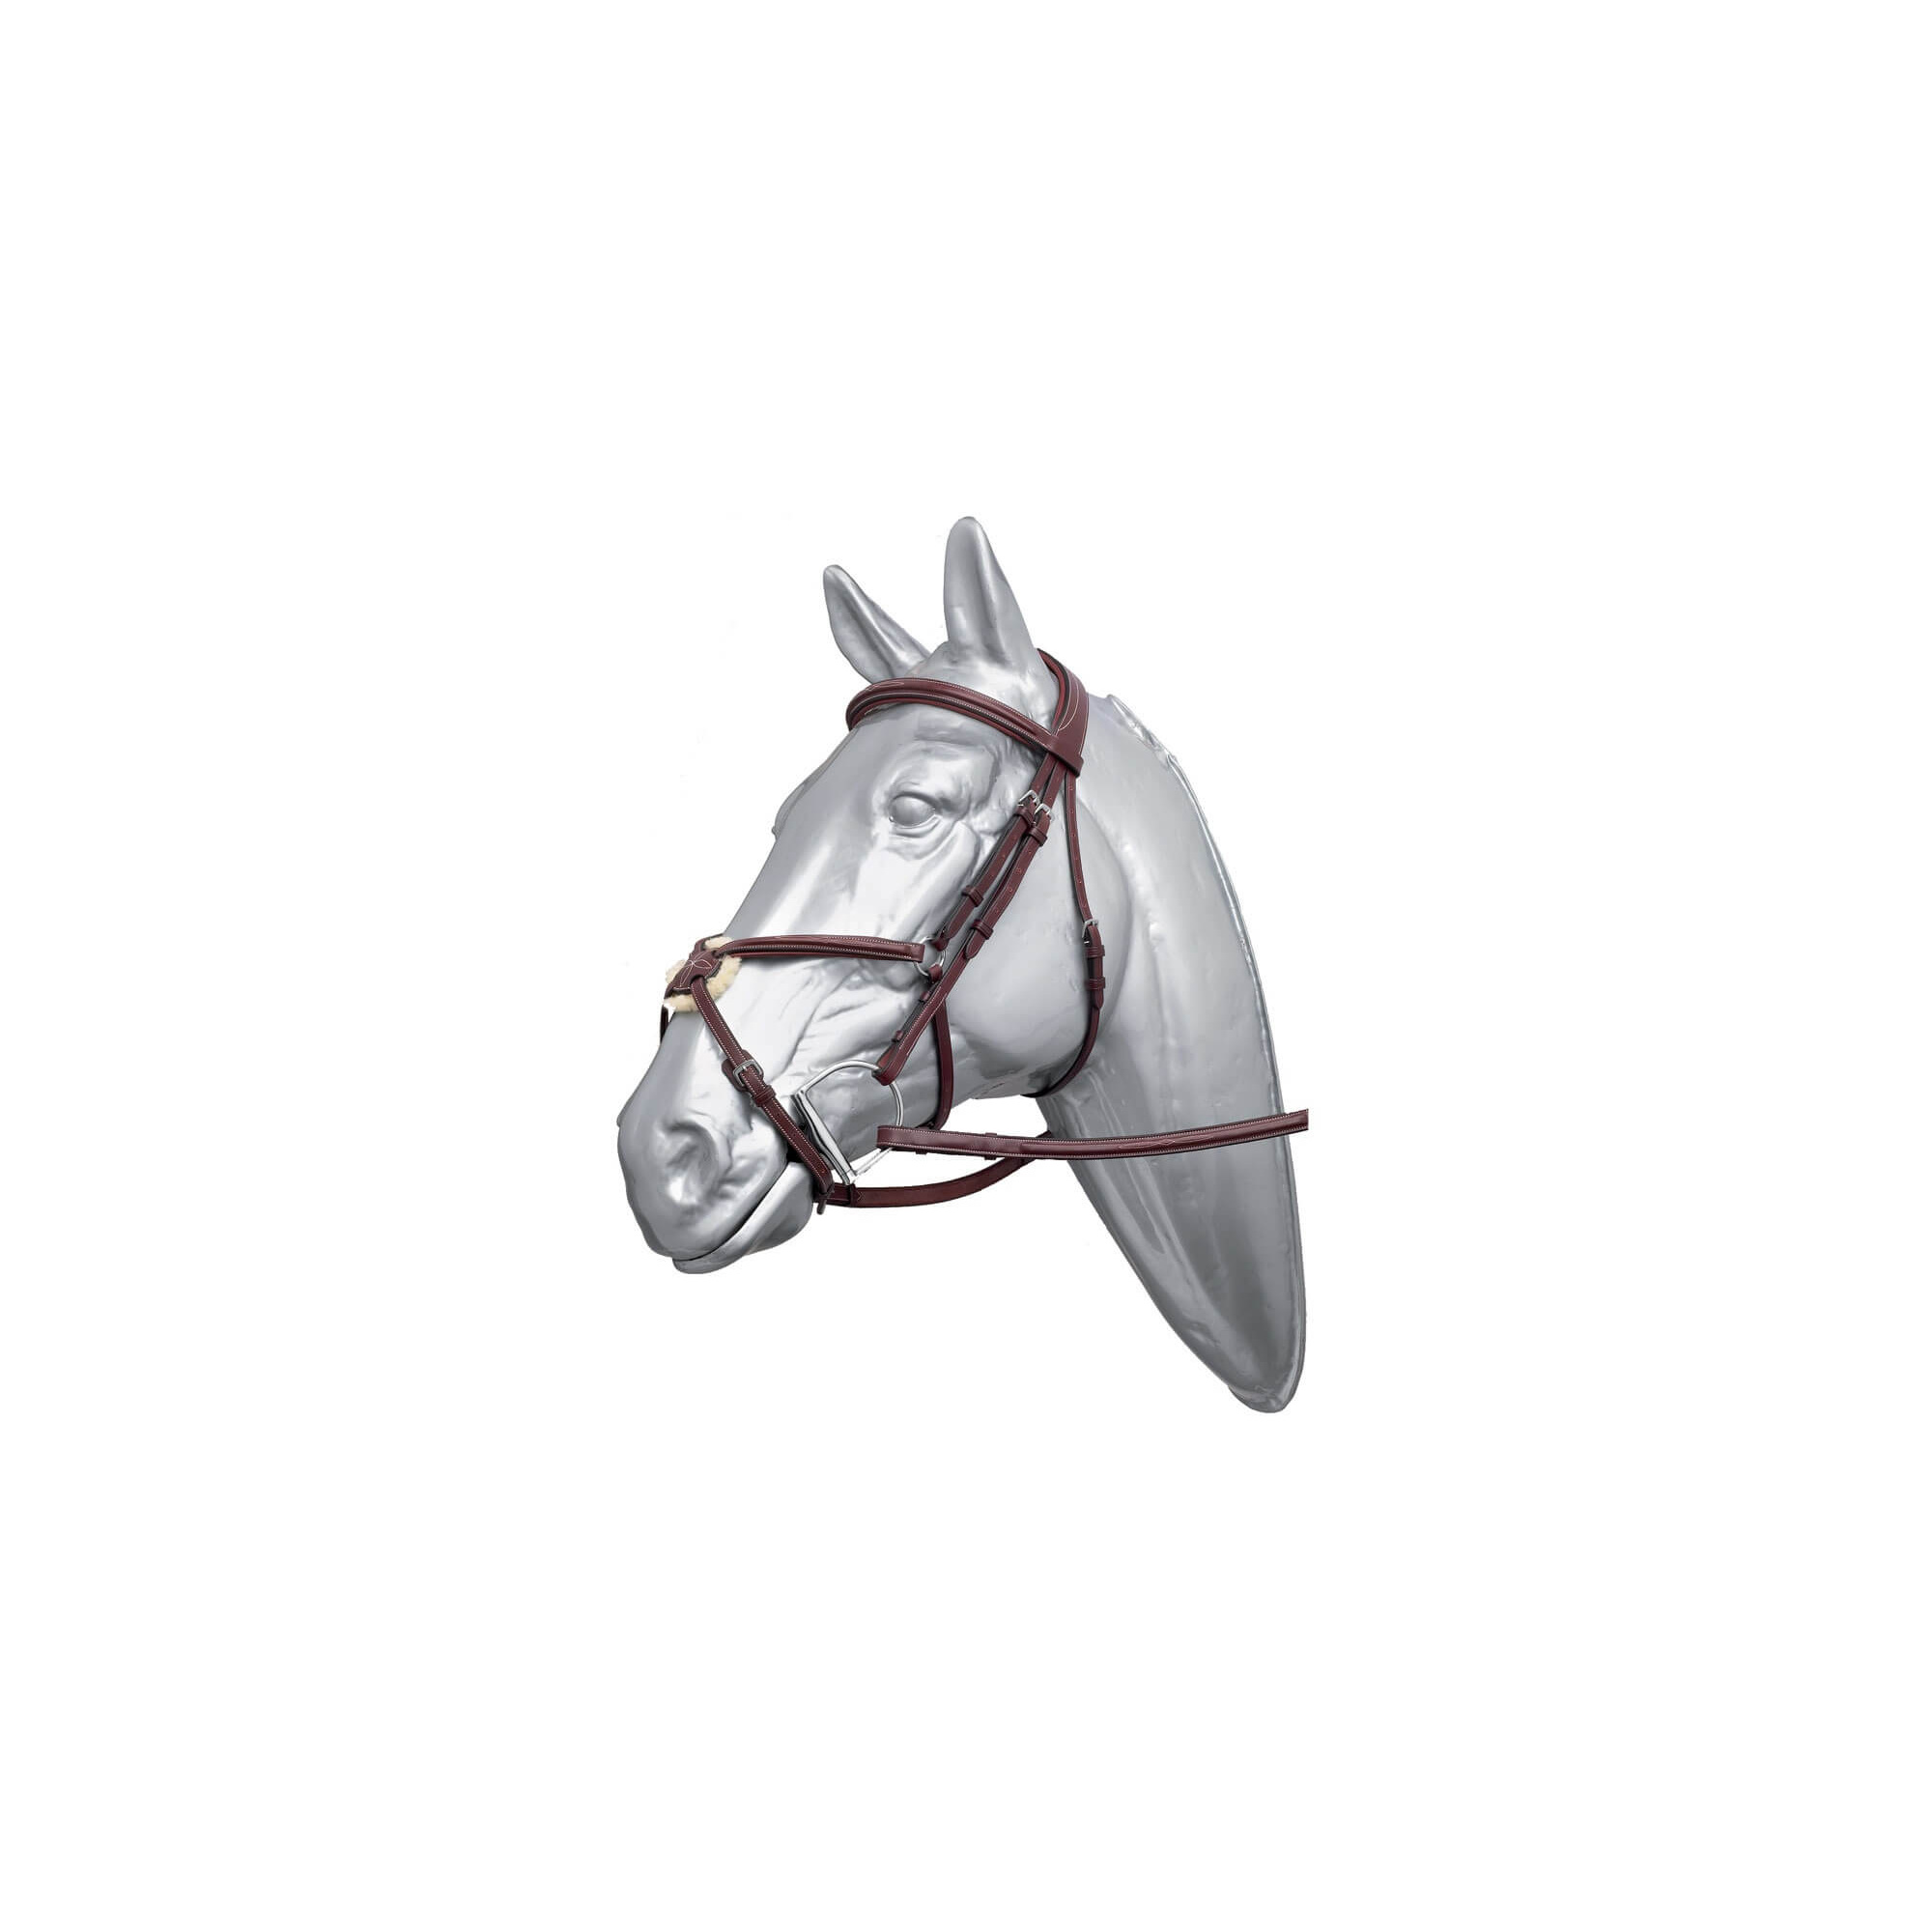 Prestige Italia E80 Leather Bridle Equishop Equestrian Shop